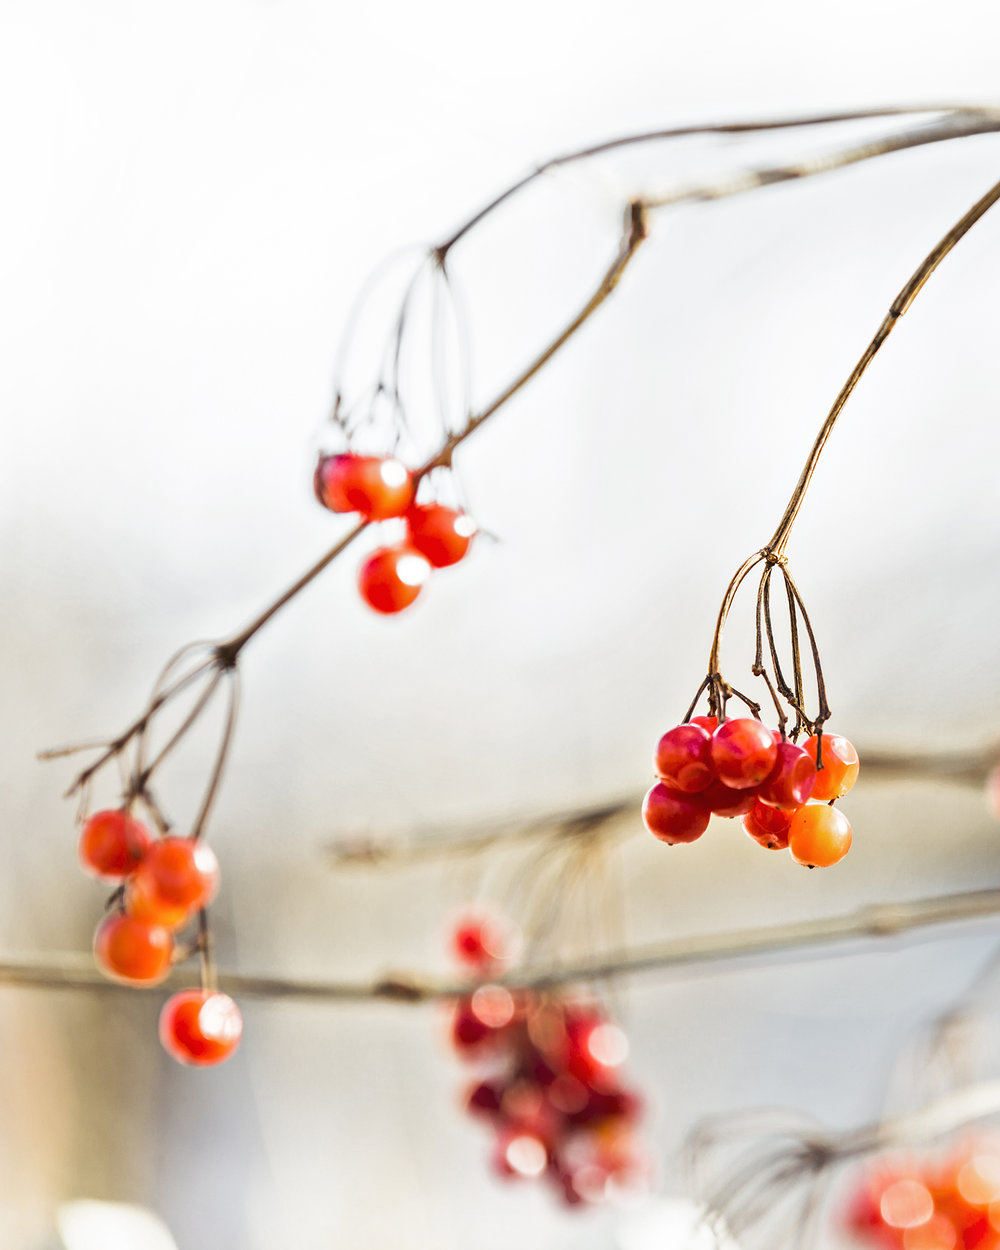 on red berries